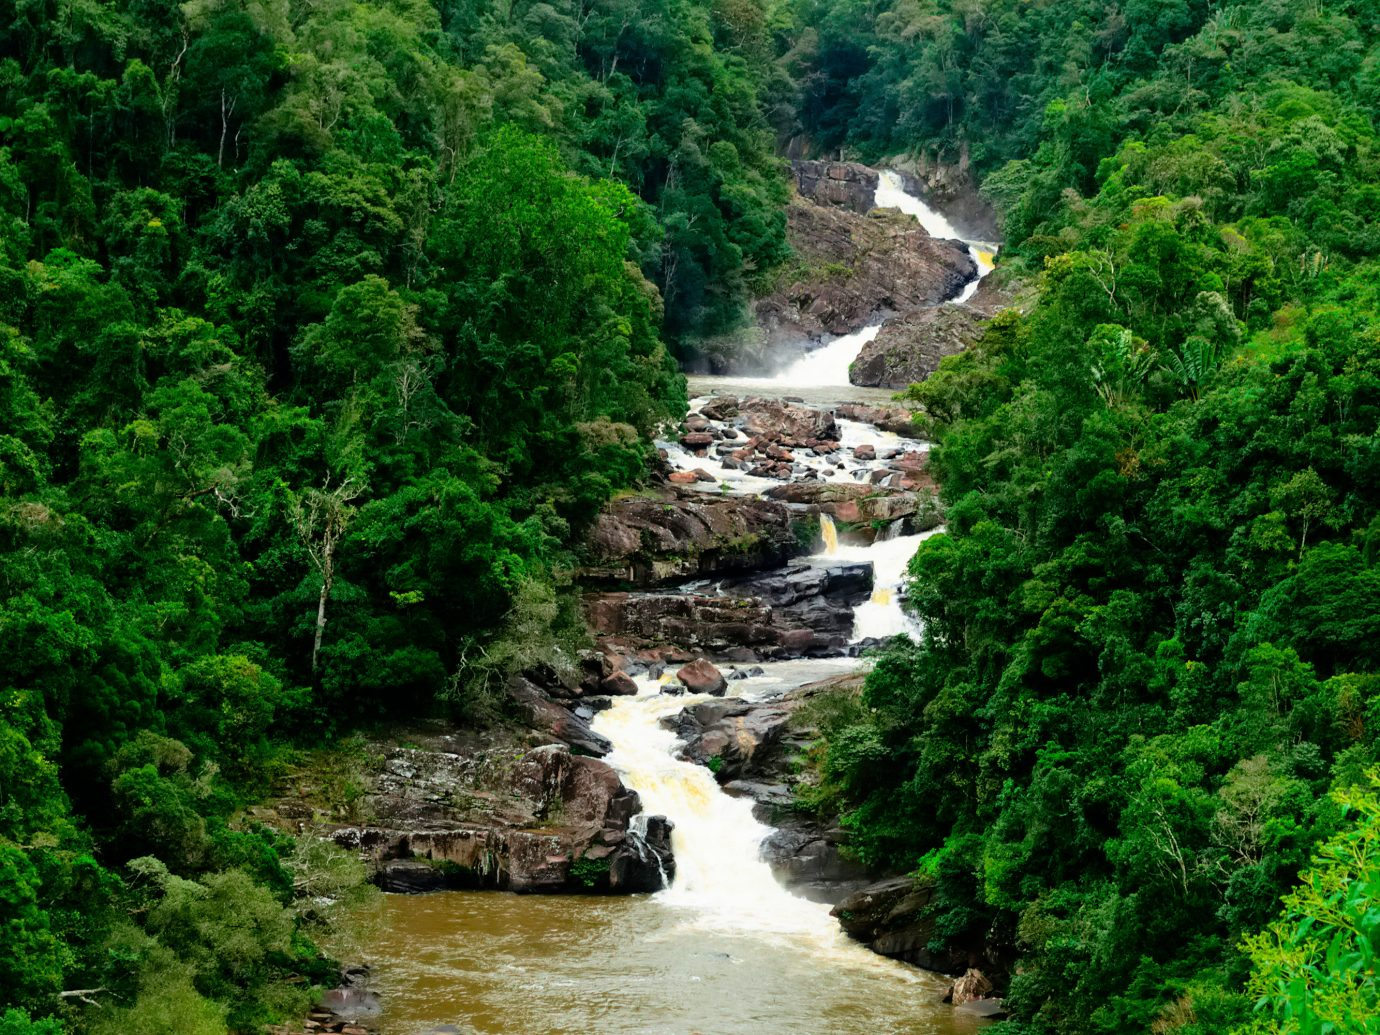 Trip Ideas tree outdoor water habitat River Nature nature reserve vegetation Waterfall body of water watercourse natural environment stream rainforest geological phenomenon Forest water feature rapid Jungle valley ravine surrounded bushes hillside traveling lush wooded